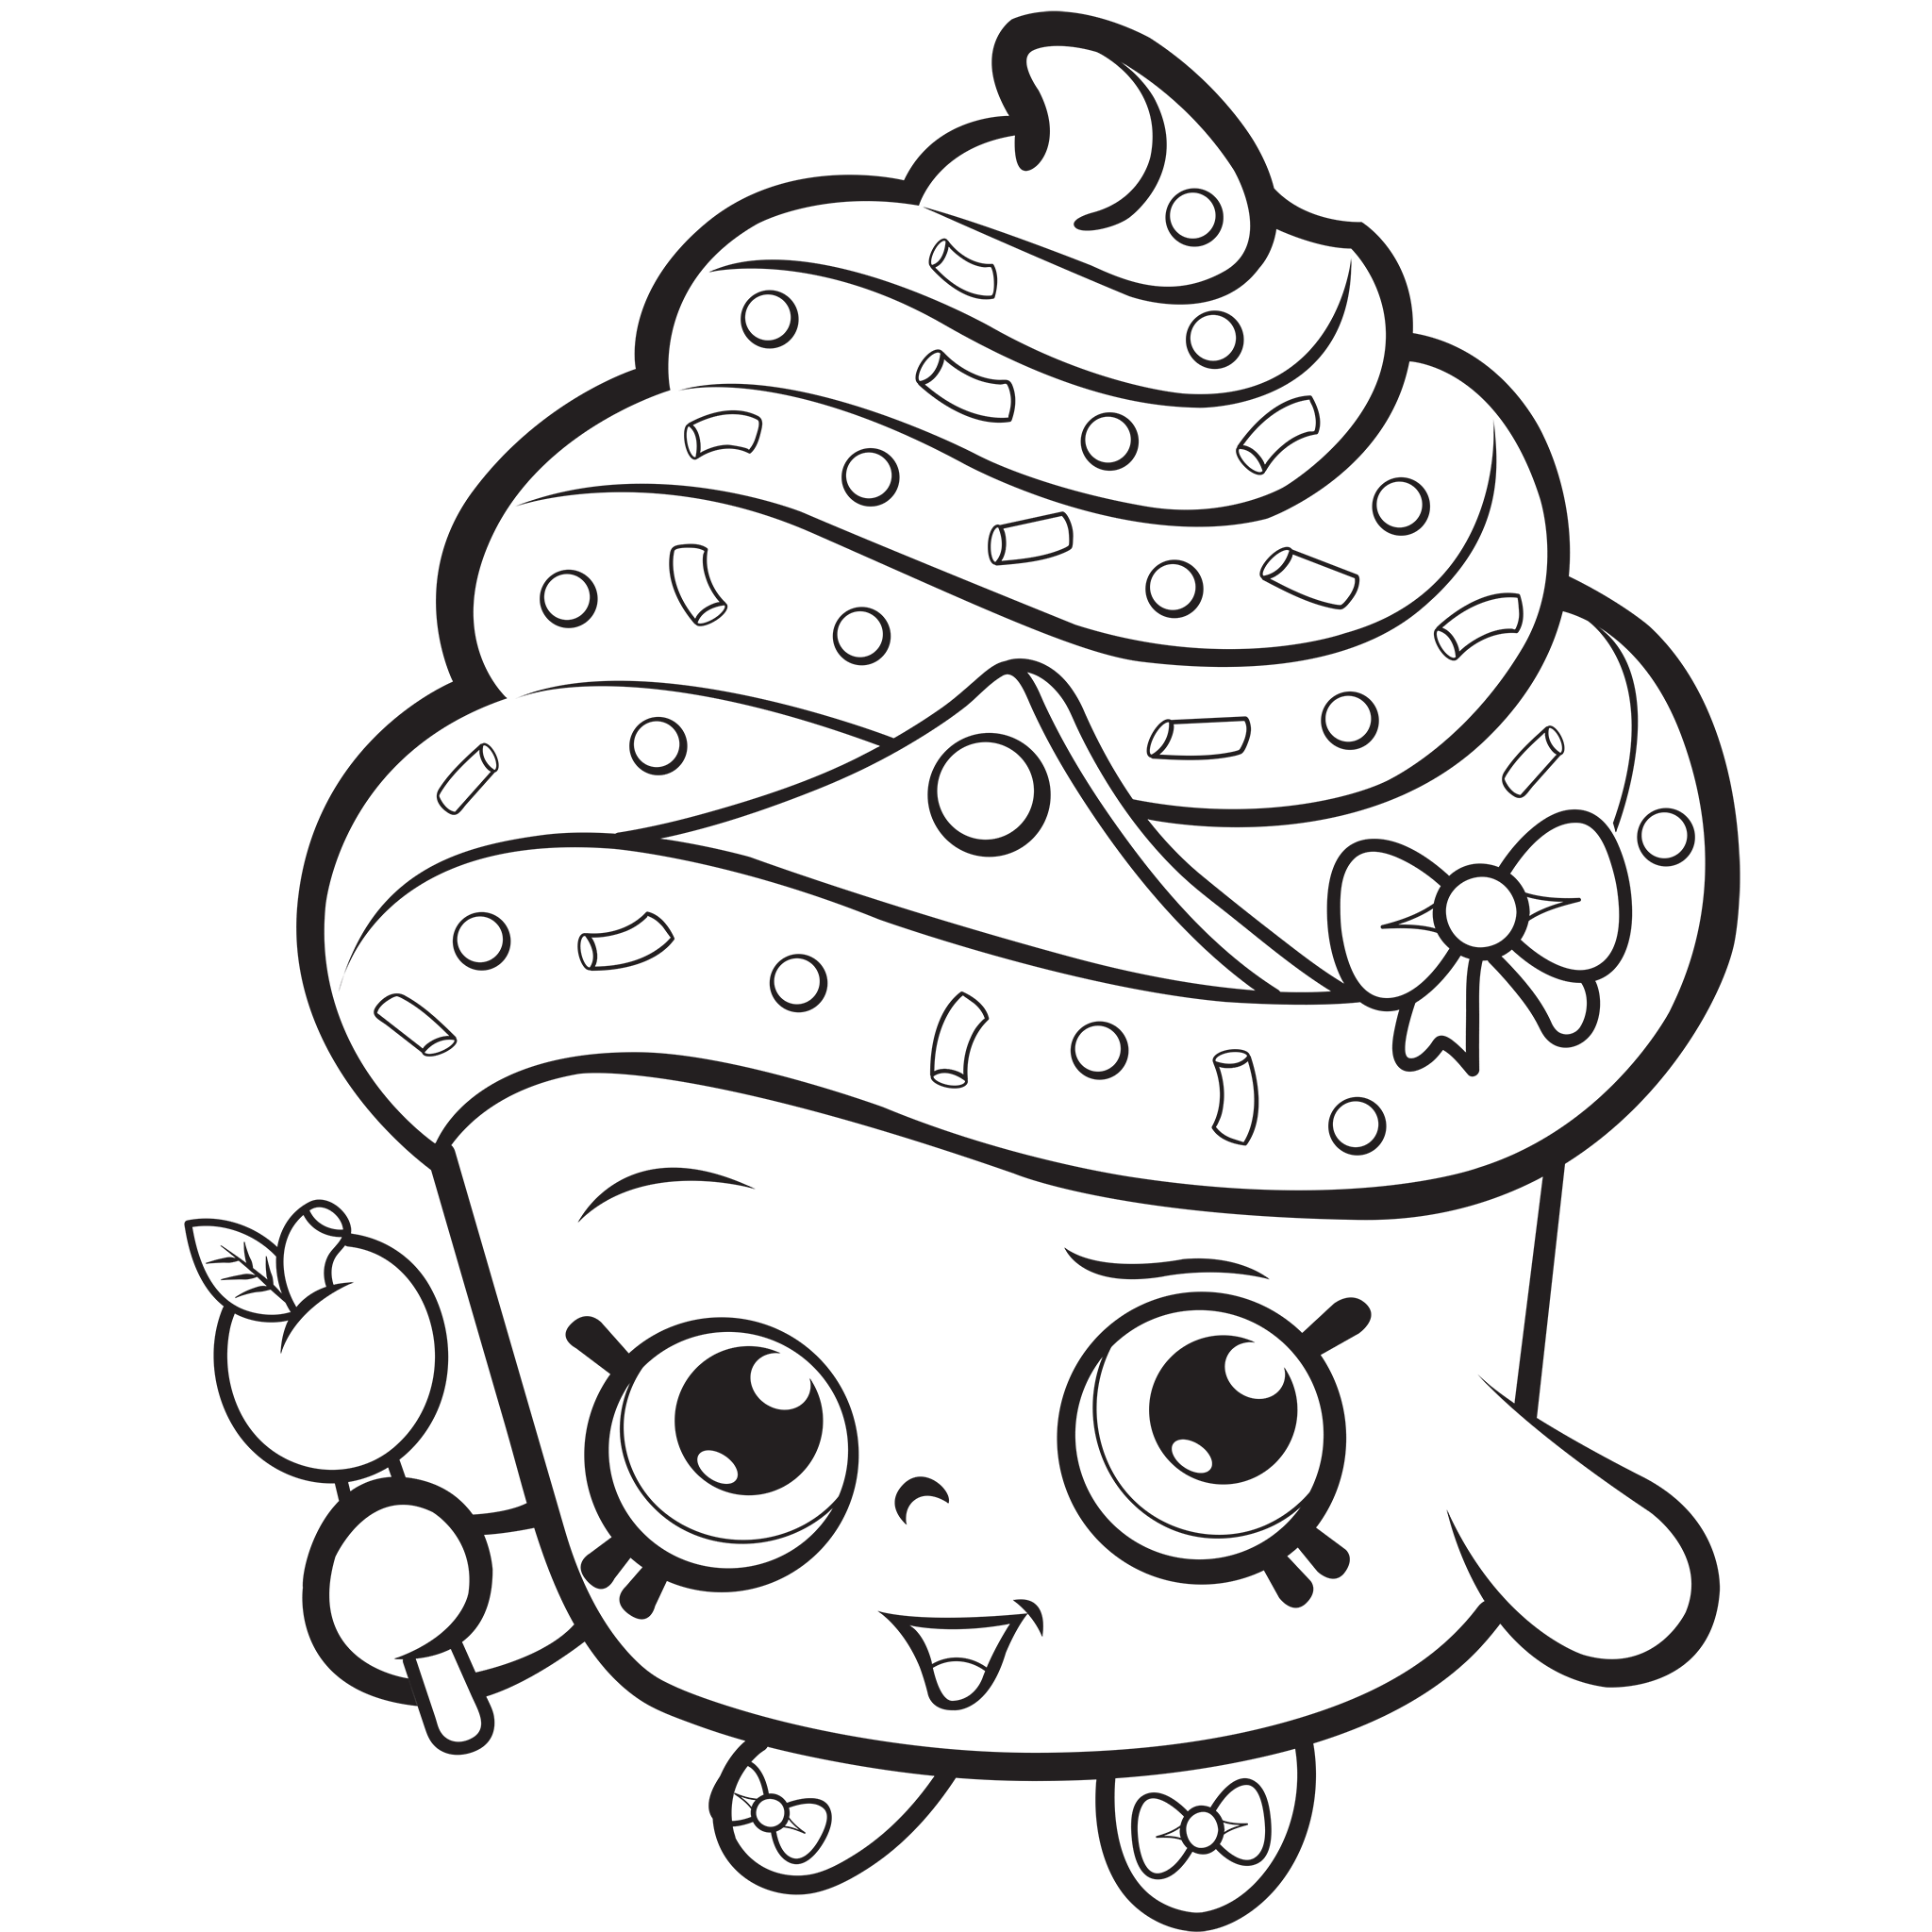 16 Unique And Rare Shopkins Coloring Pages | Coloring pages ...